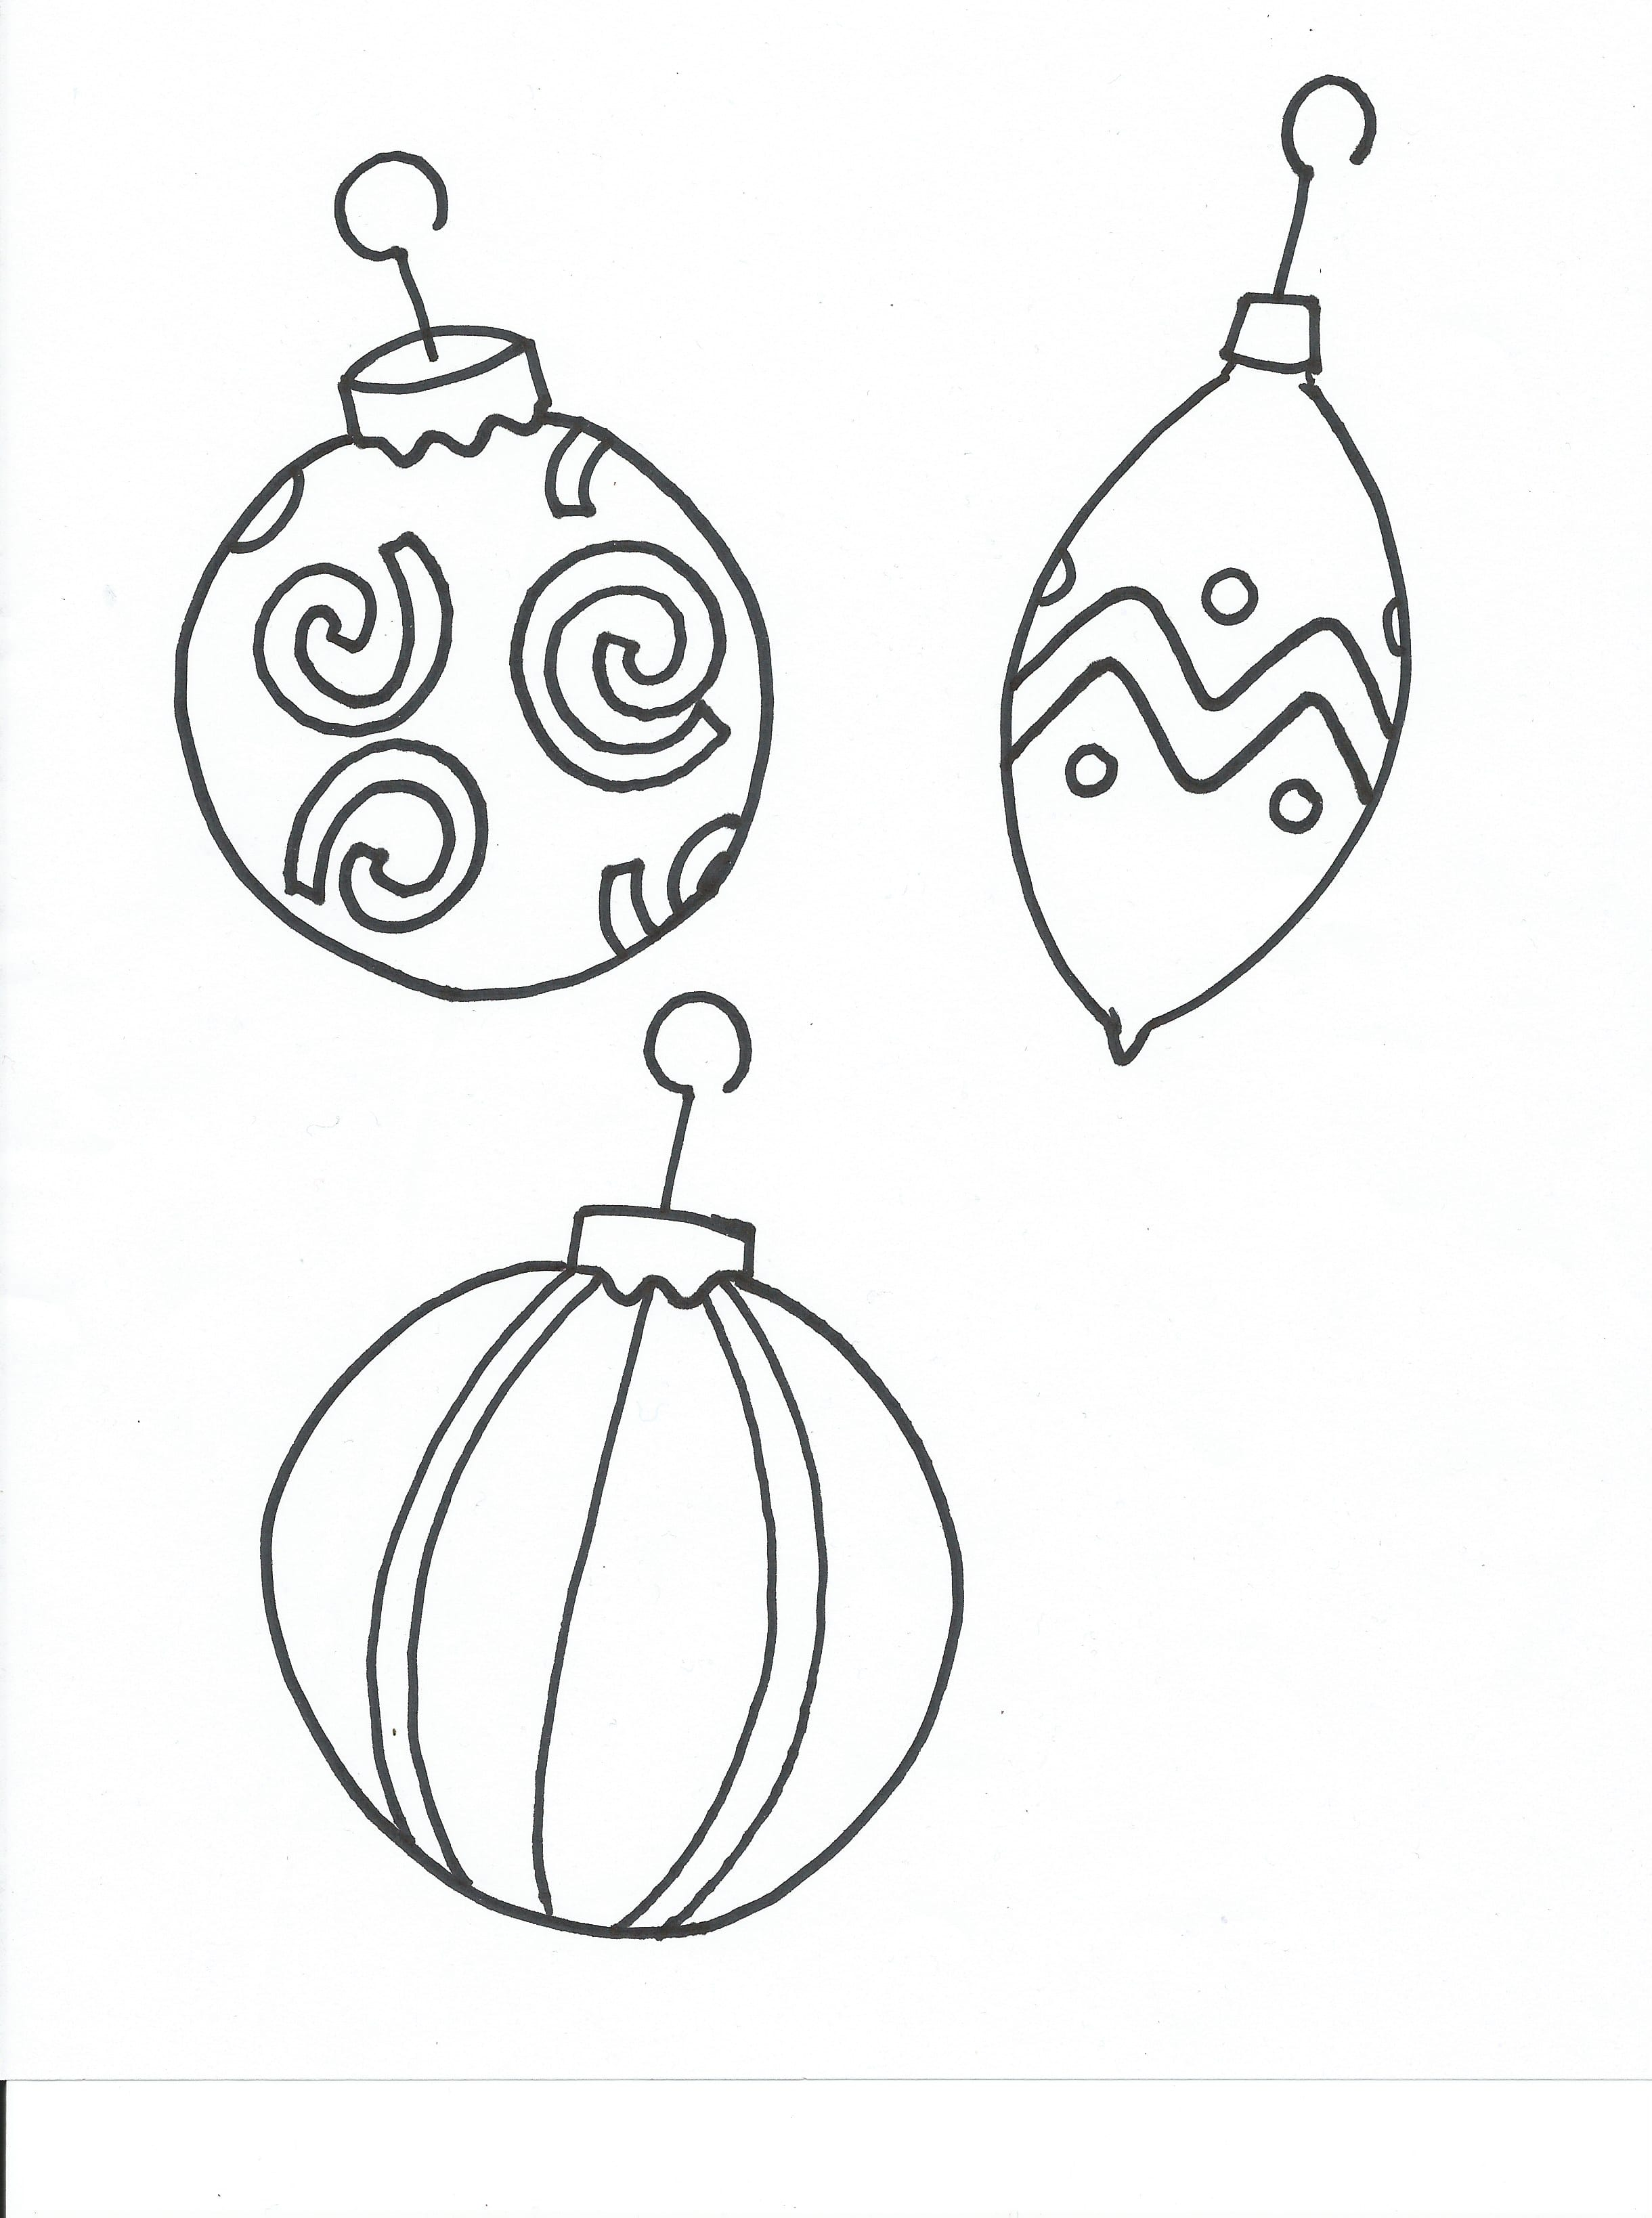 Coloring pages christmas tree blank christmas tree coloring pages - Free Printable Coloring Page Christmas Ornaments Free Printable Coloring Page Christmas Tree